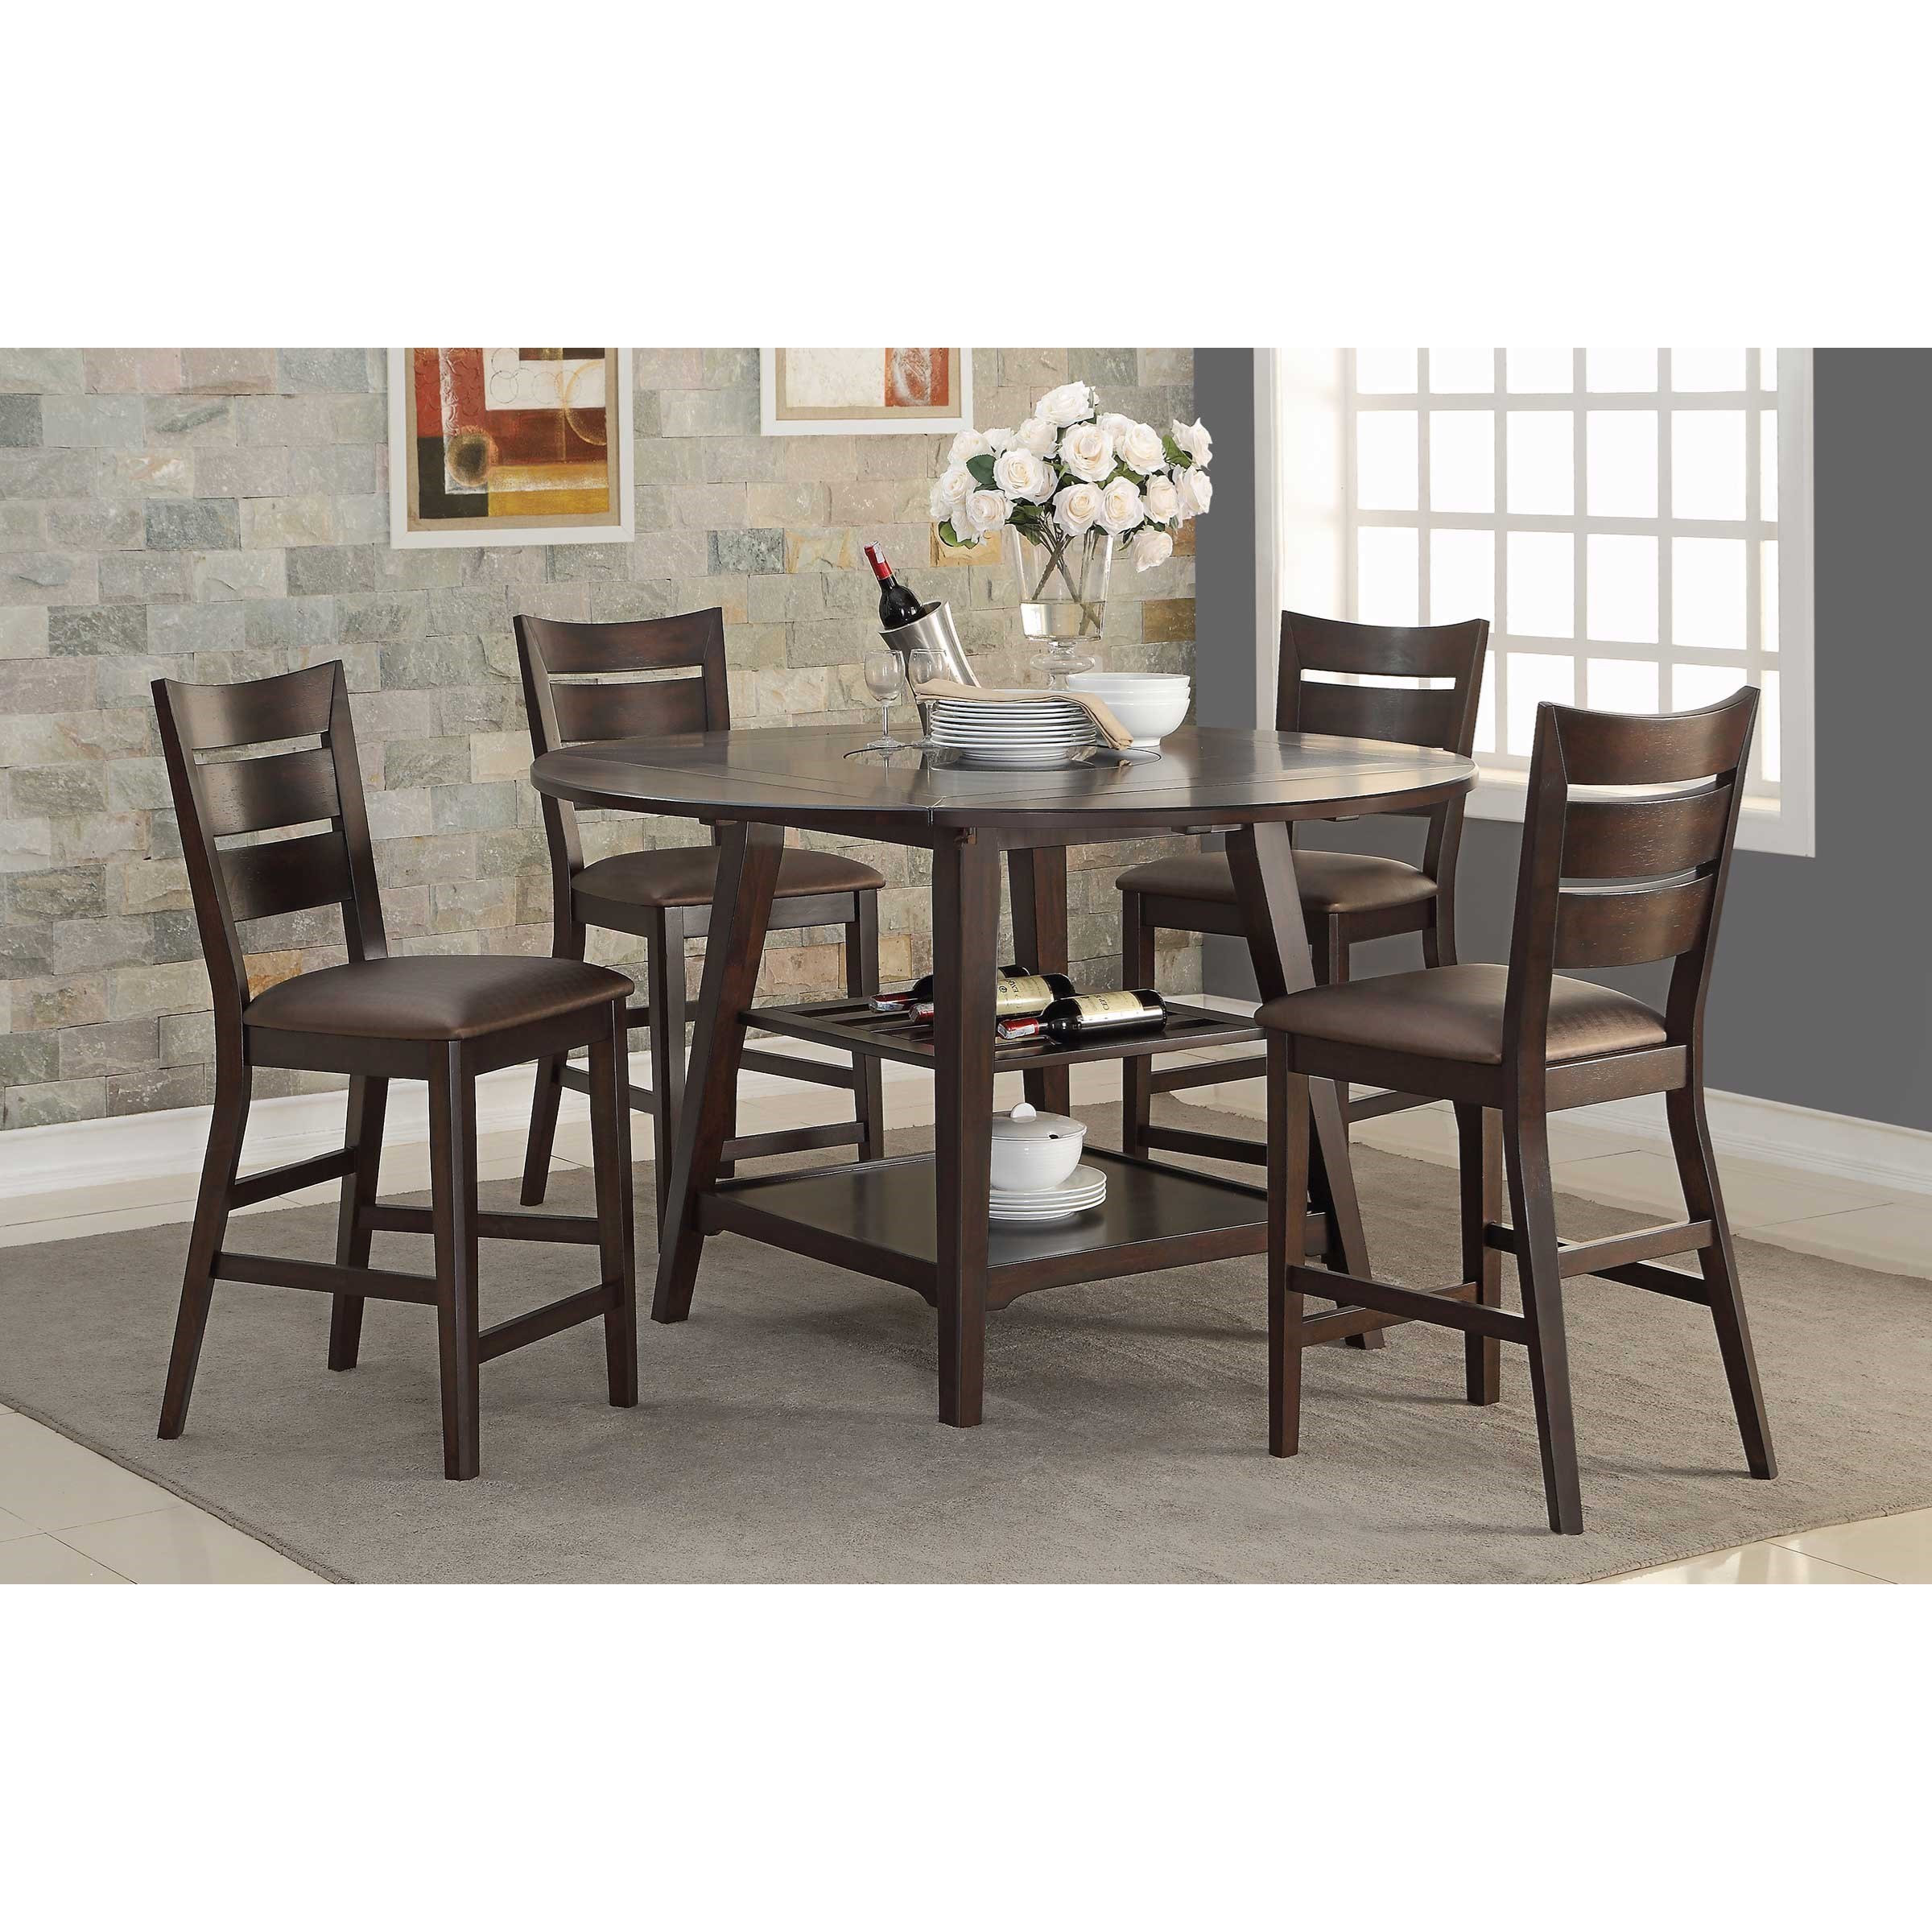 Average Dining Room Table Height: Winners Only Parkside Drop-Leaf Counter Height Table With